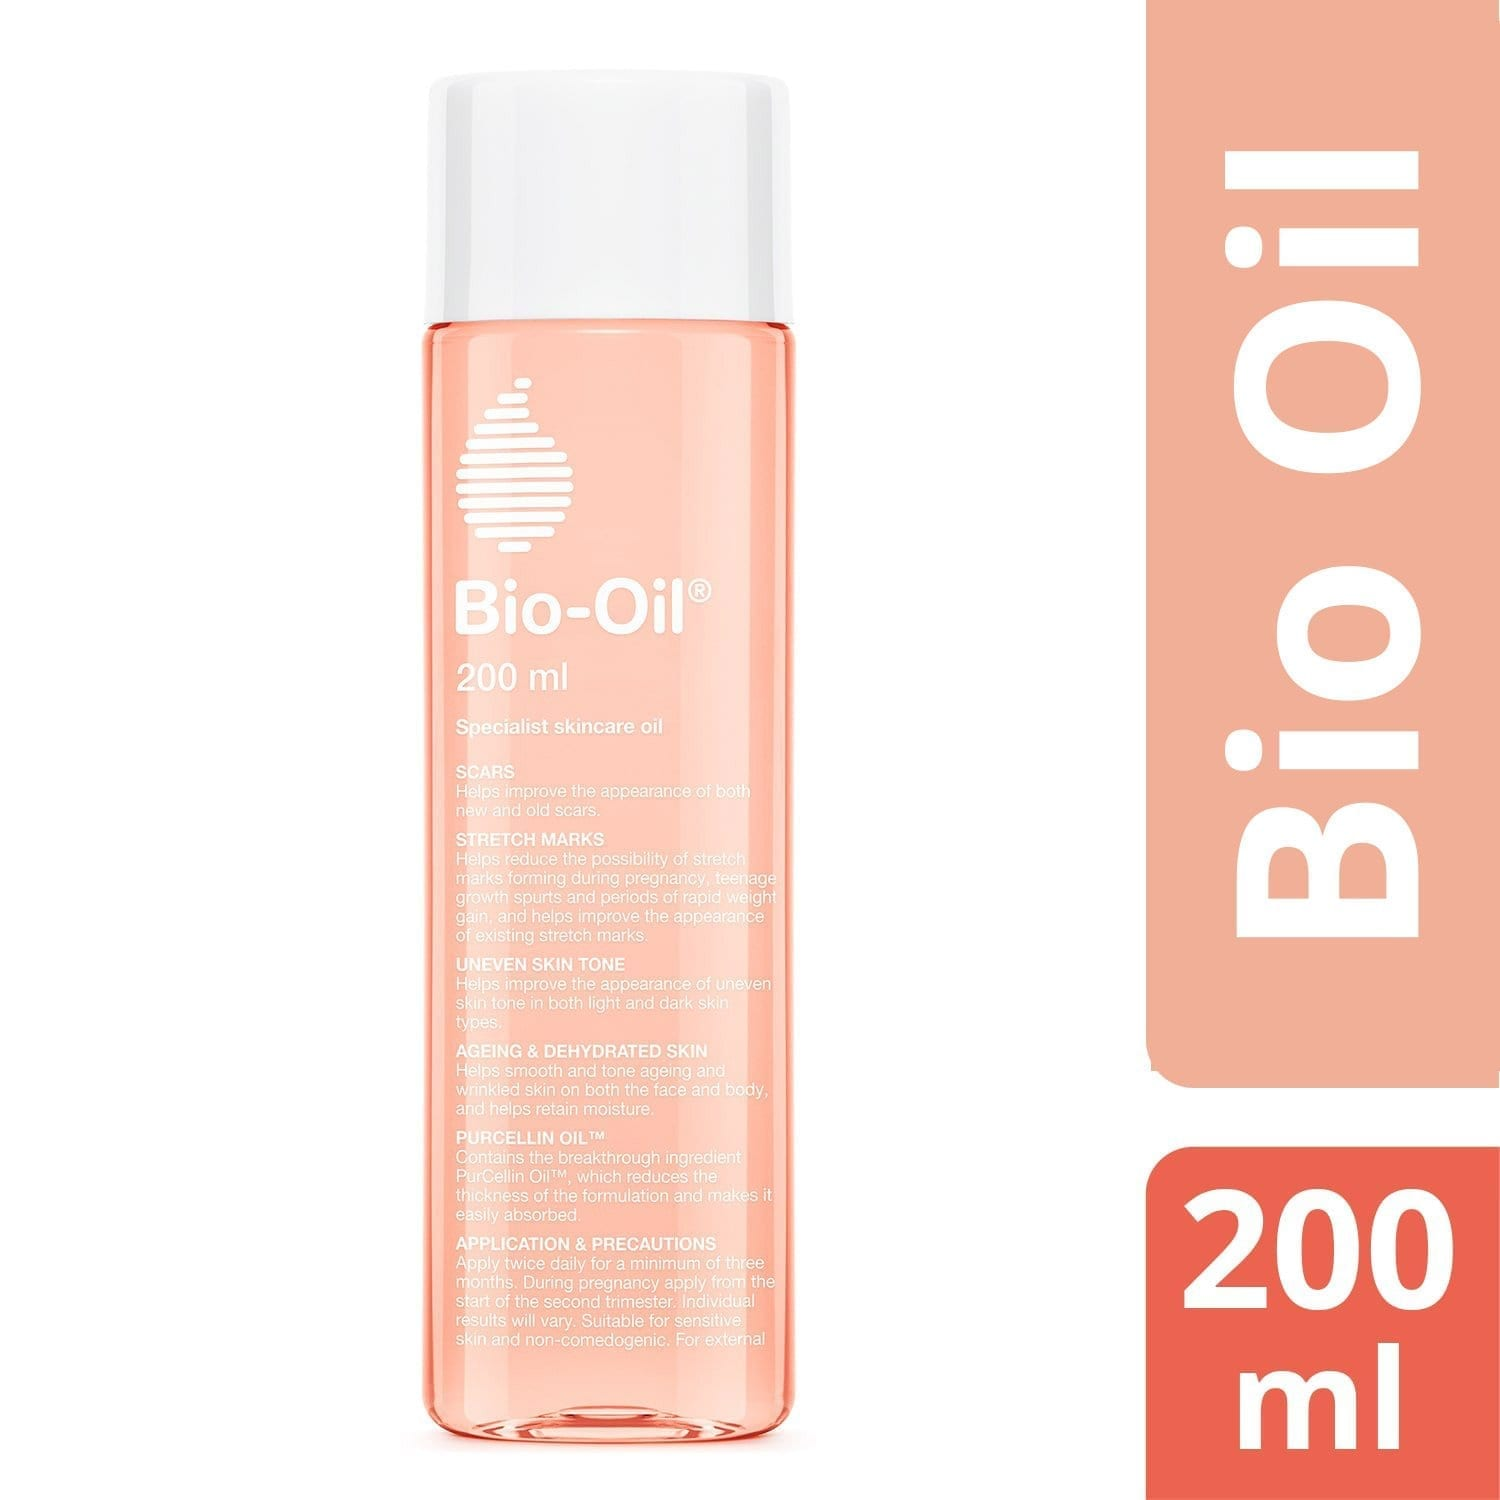 Bio-Oil Specialist Skincare Oil - product